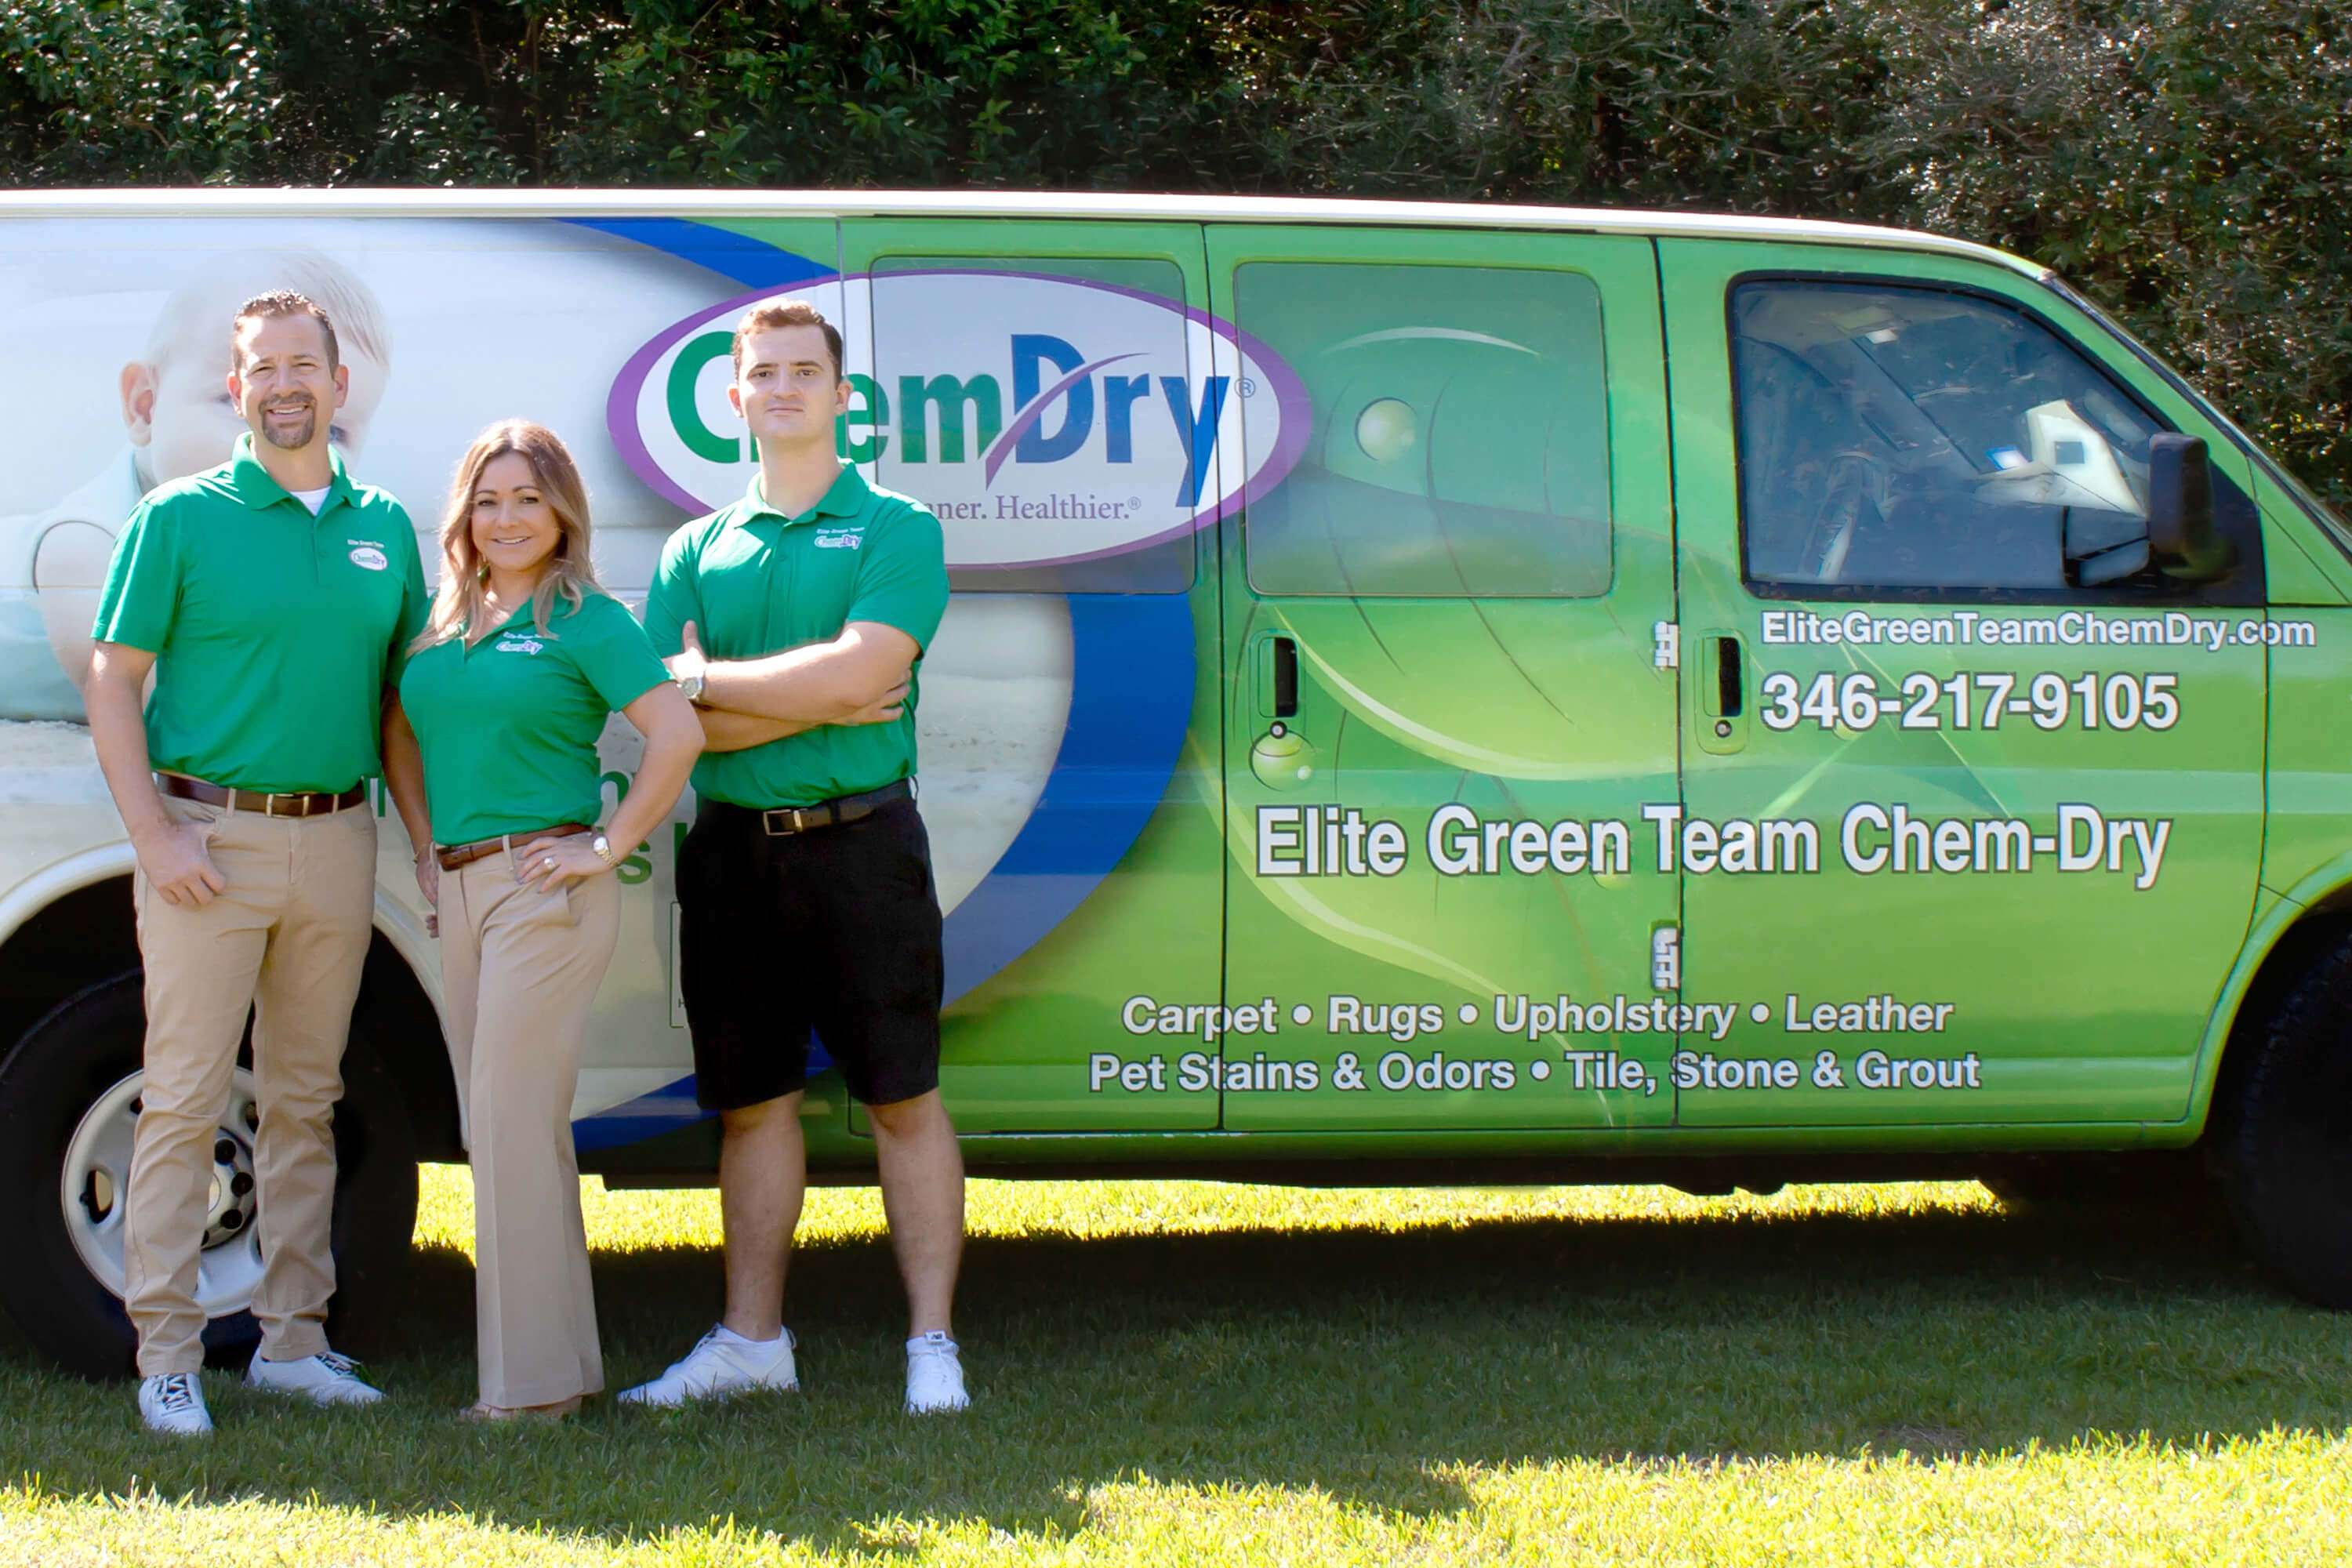 Elite Green Team Chem-Dry carpet cleaning